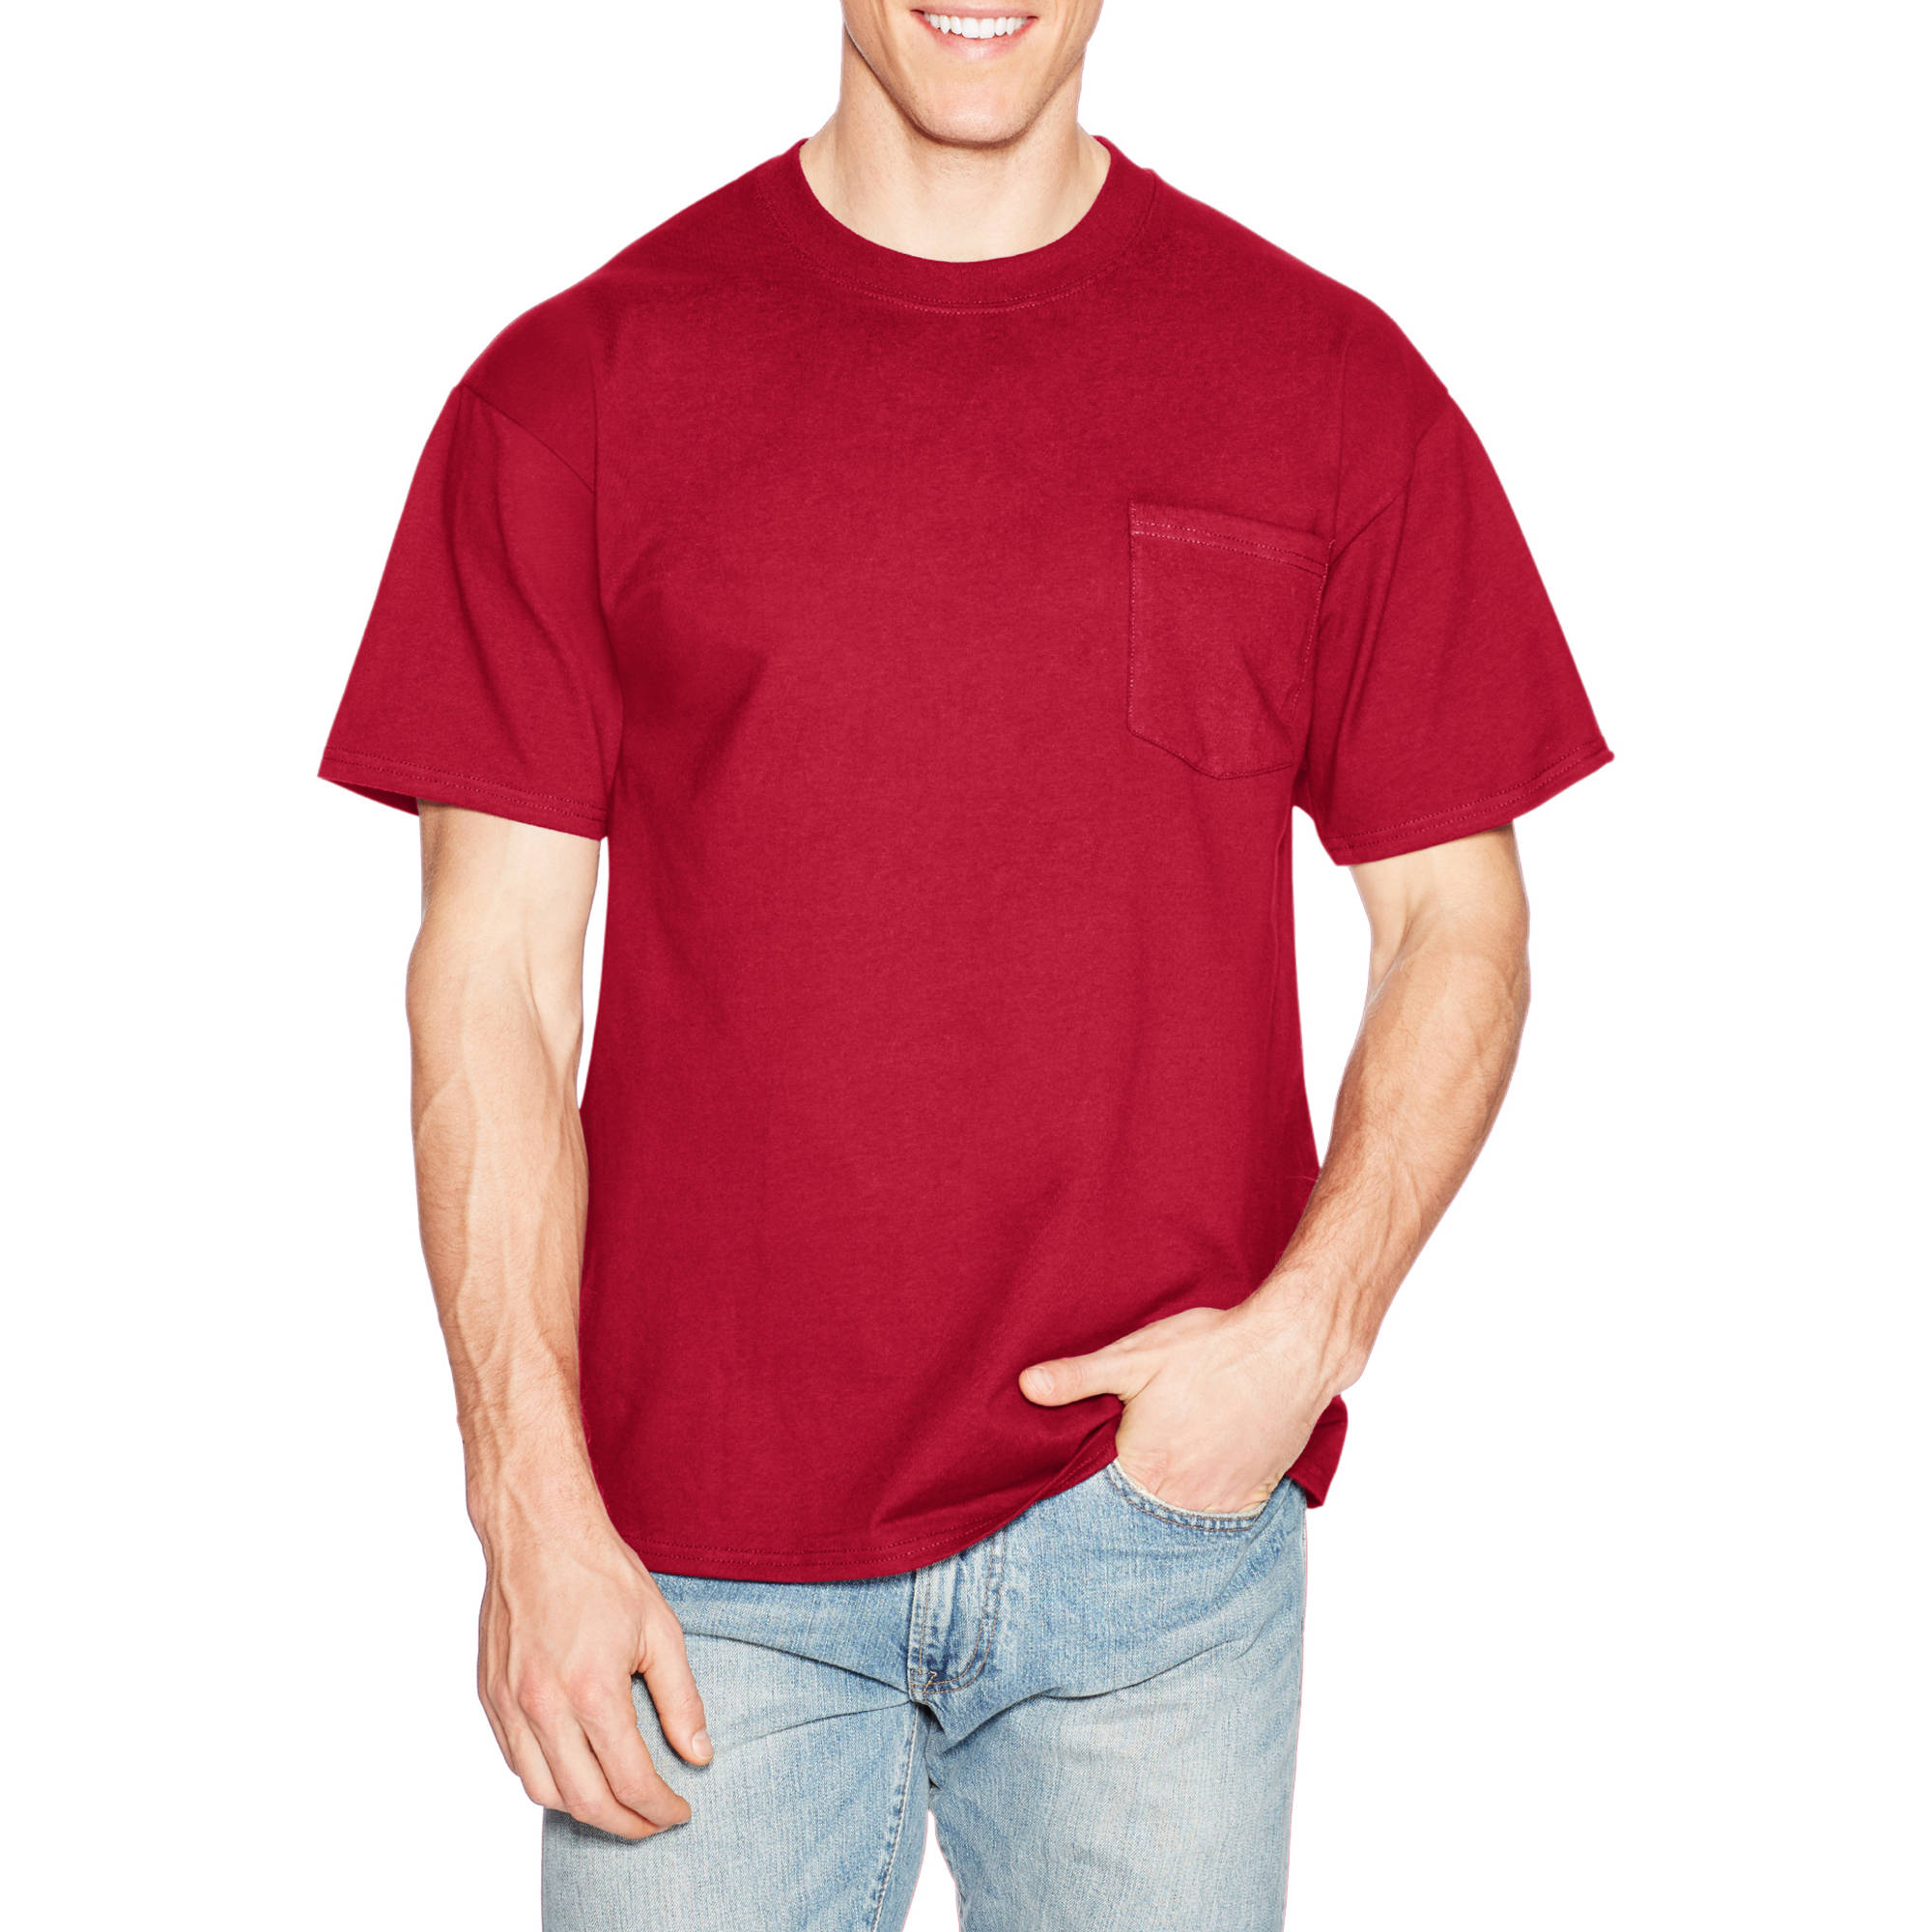 Hanes Men's Beefy-T Short Sleeve Tee with Pocket